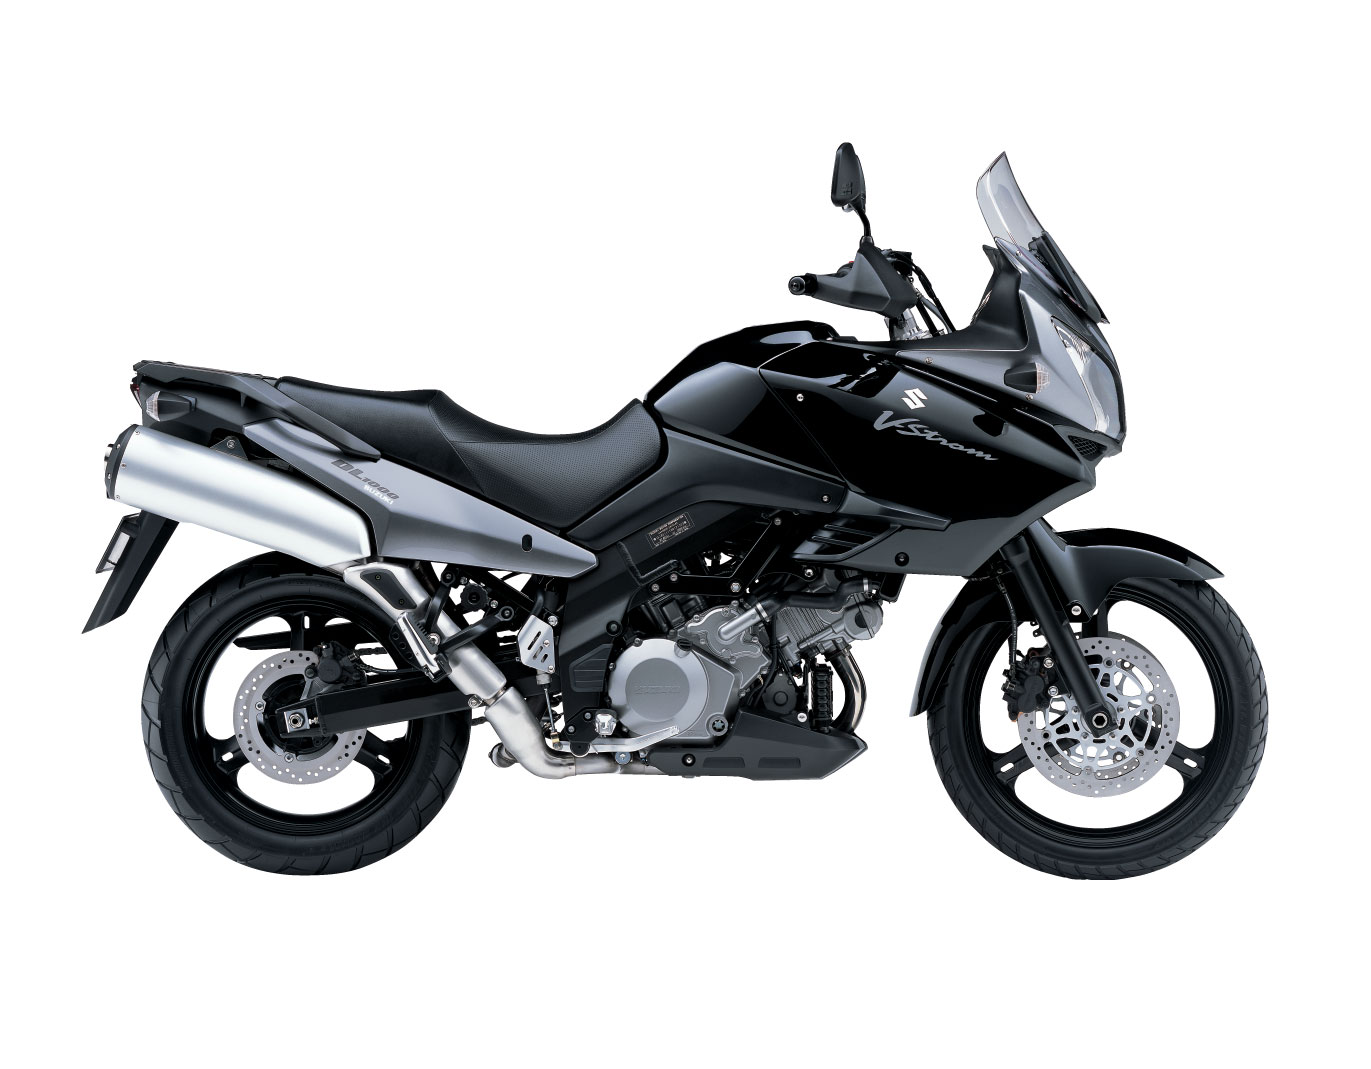 2007 suzuki v strom 1000. Black Bedroom Furniture Sets. Home Design Ideas